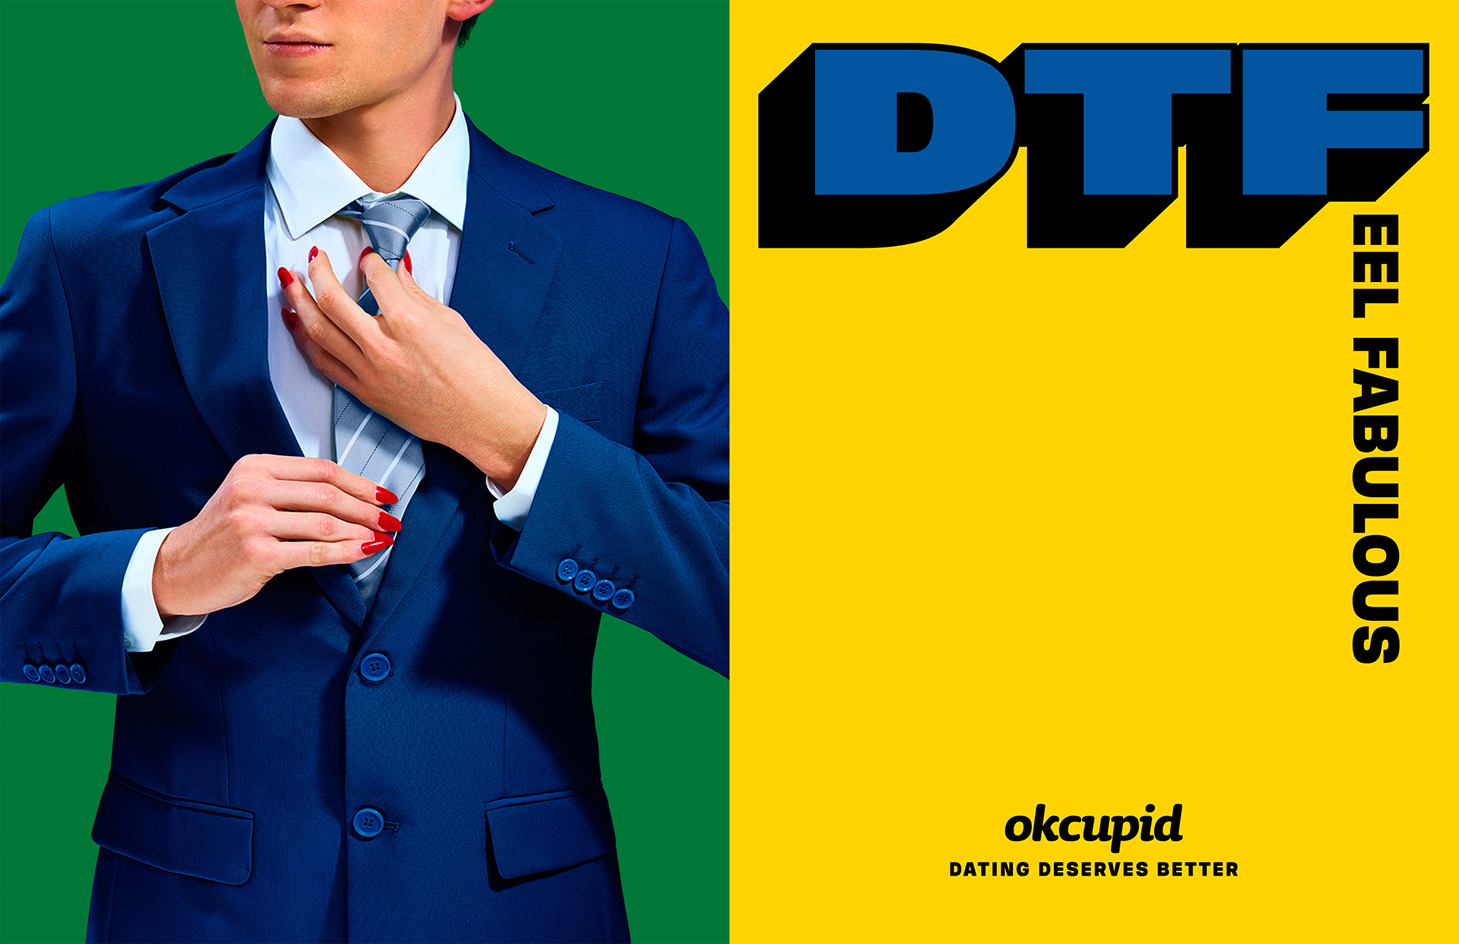 Cheeky OkCupid Ad Campaign by Maurizio Cattelan and Pierpaolo Ferrari